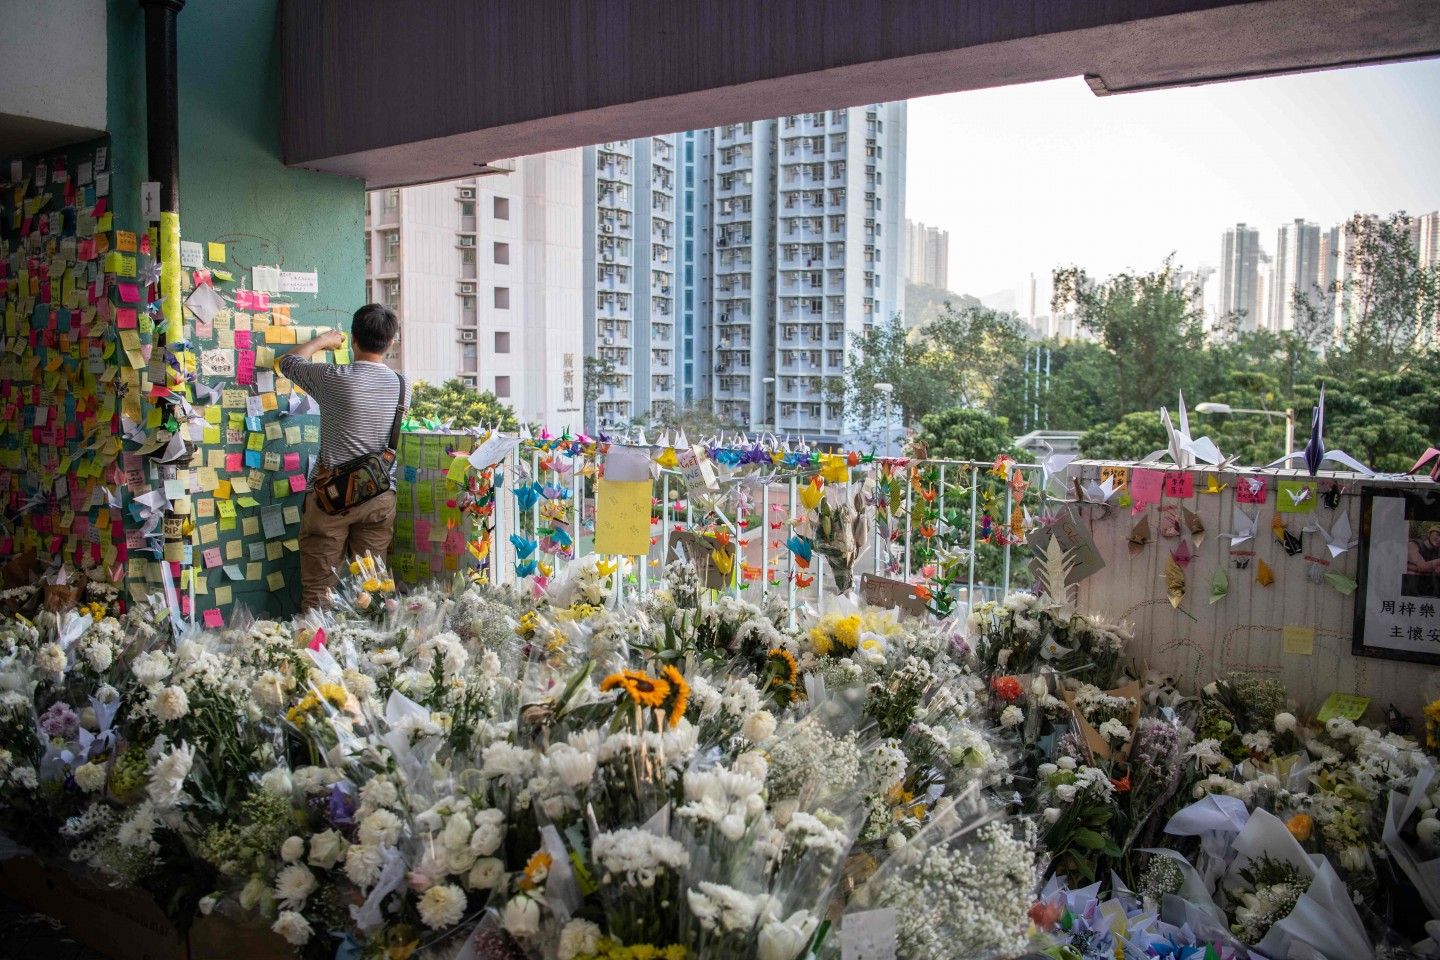 A makeshift memorial overflowing with flowers is seen at the car park where student Alex Chow, 22, fell during a recent protest in the Tseung Kwan O area on the Kowloon side of Hong Kong on November 9, 2019. (Laurel Chor/AFP)